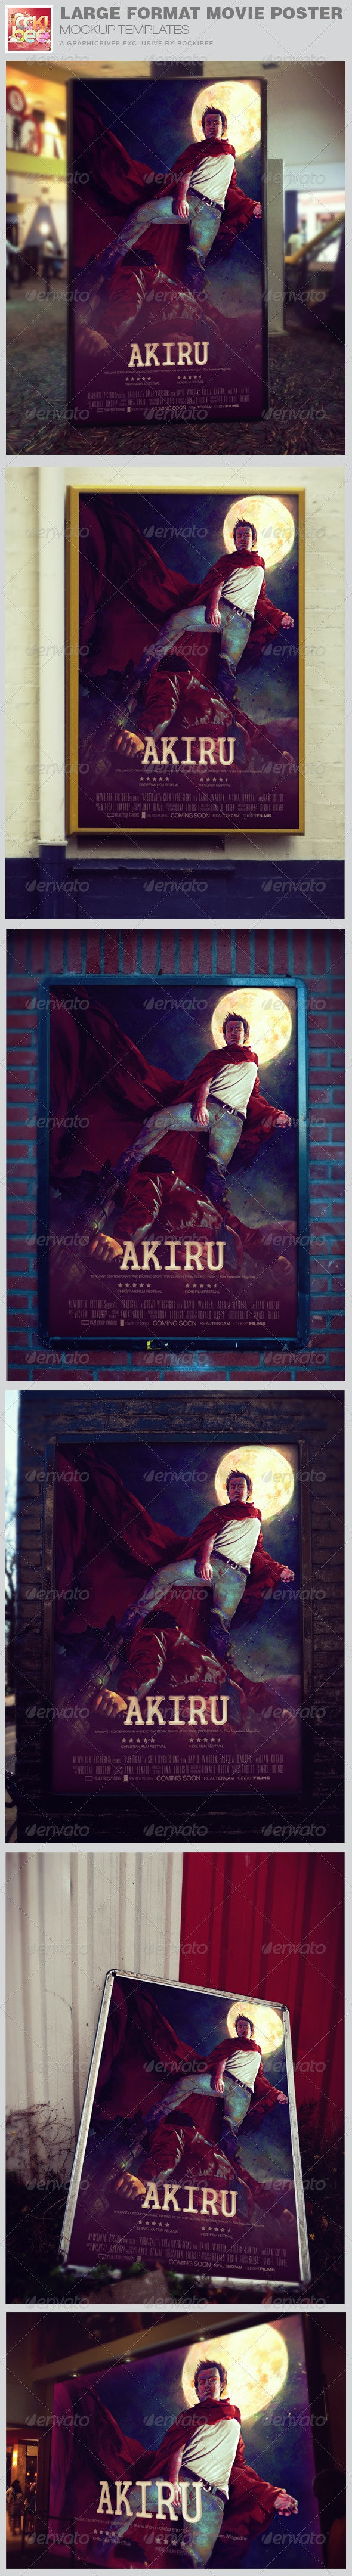 Large Format Movie Poster Mockup Templates - Posters Print